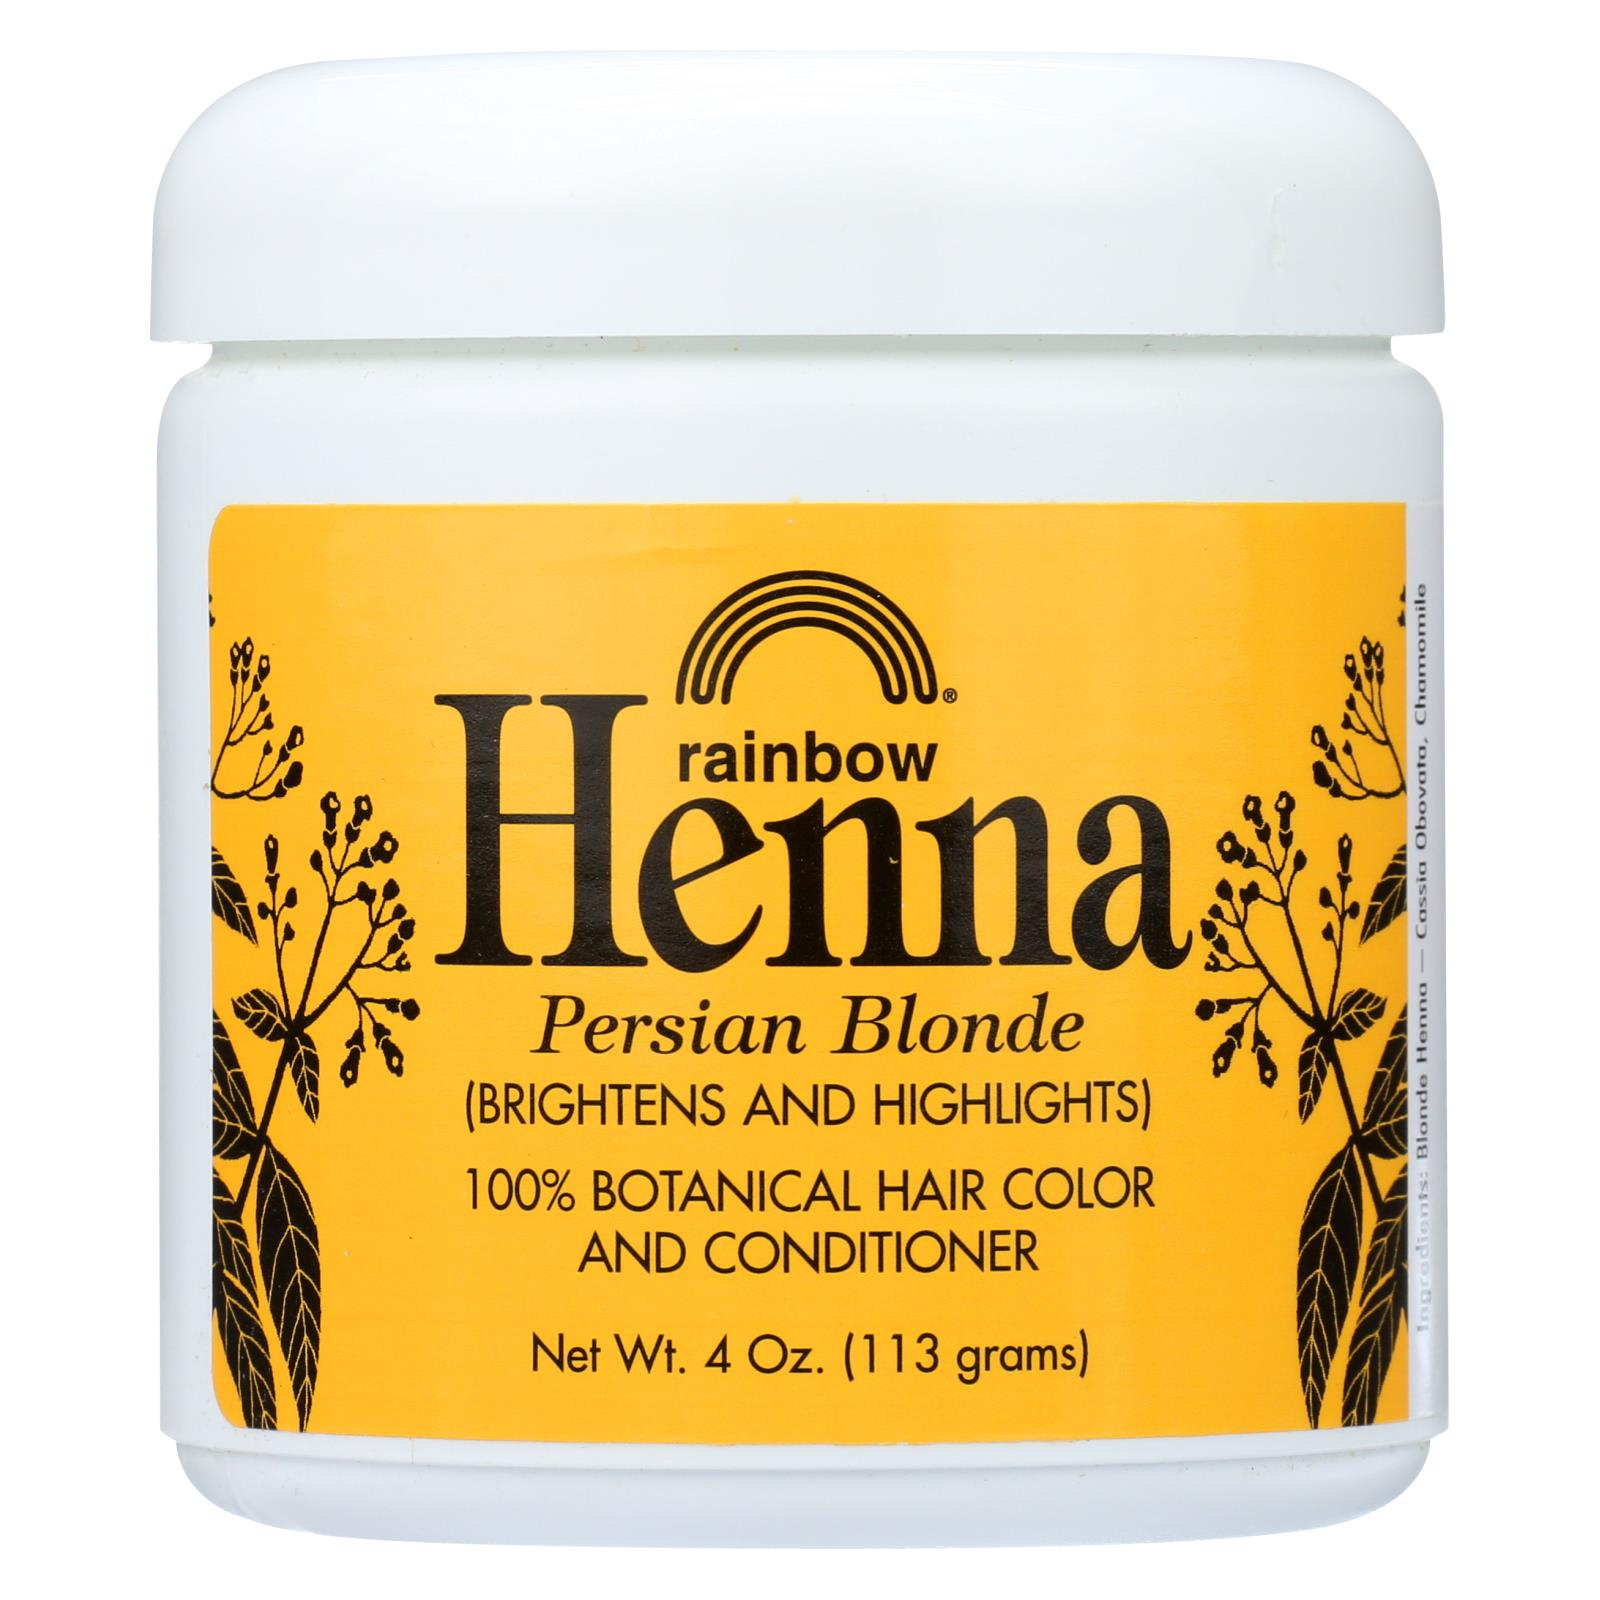 Buy Rainbow Research Henna 100% Botanical Hair Color and Conditioner - Persian Blonde - 4 oz - Hair Color from Veroeco.com